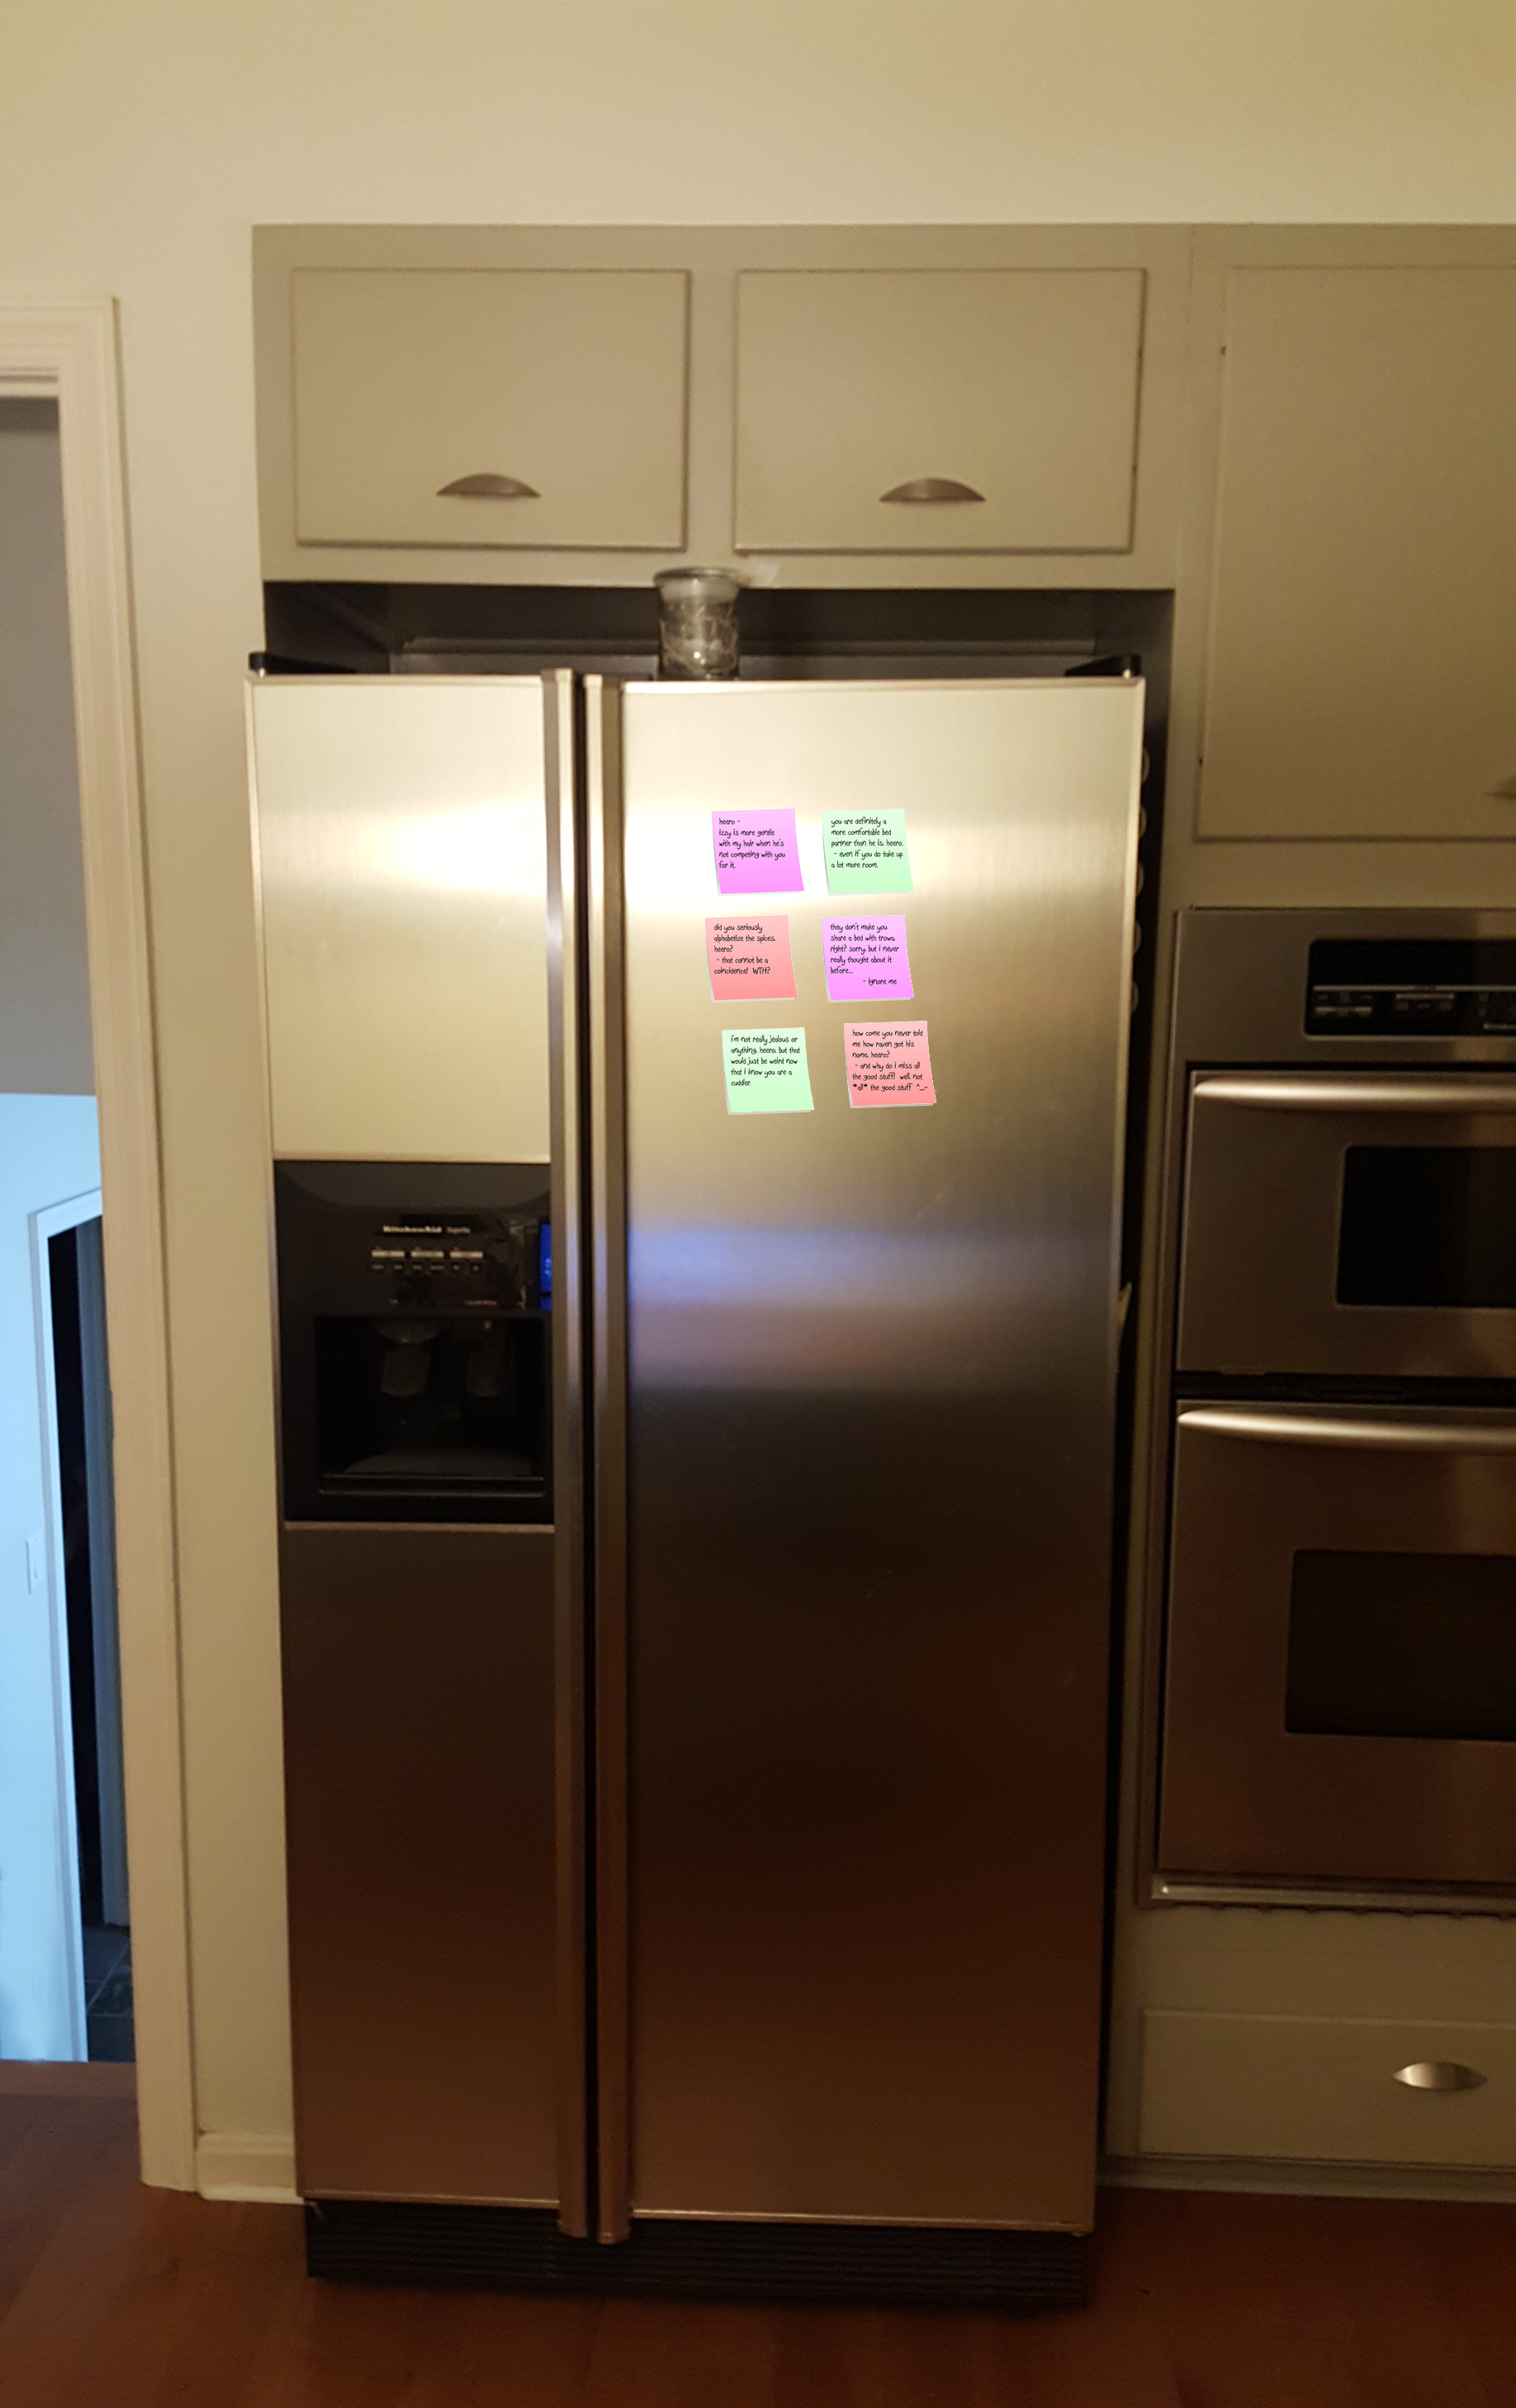 refrigerator with duo's notes on it